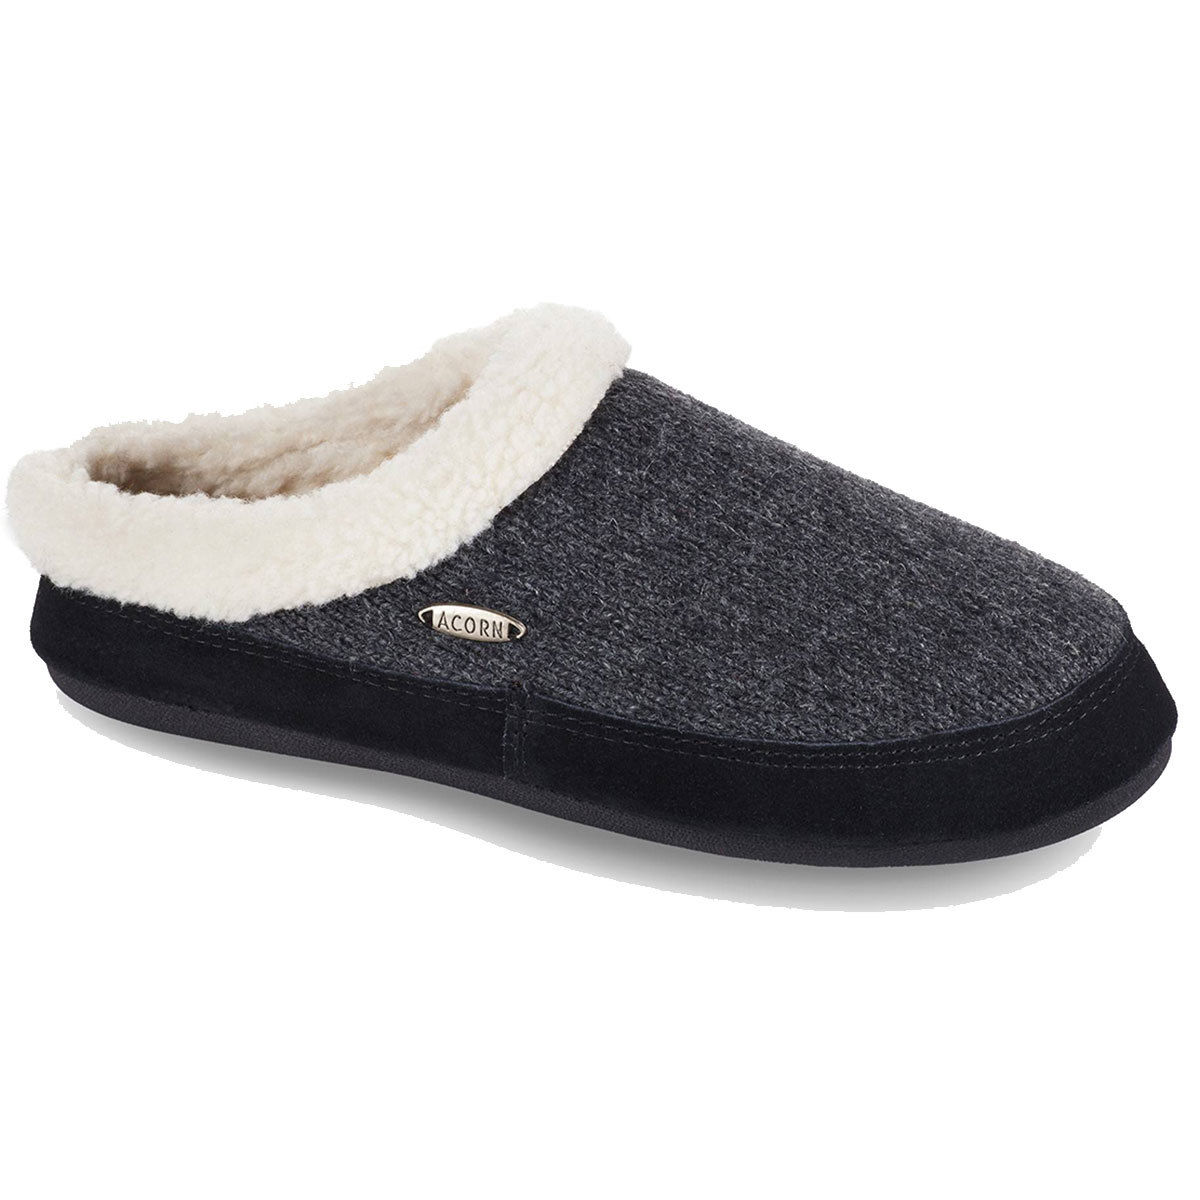 Acorn Women's Mule Ragg Slippers - Black, M